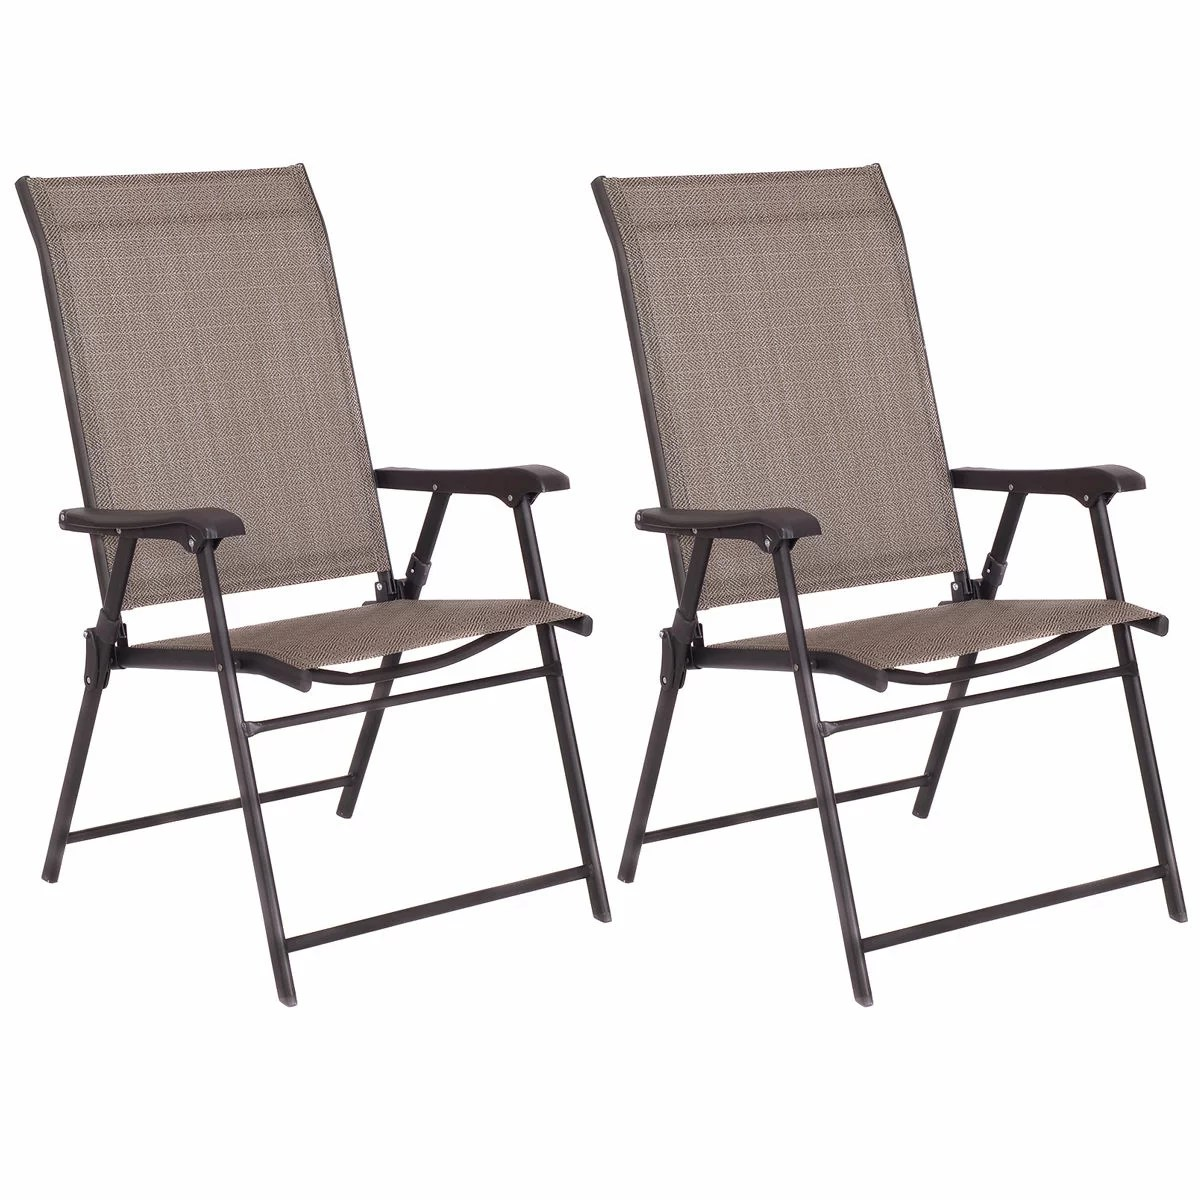 Patio Folding Chairs Camping Deck Garden Sling Patio Fabric Folding Chair